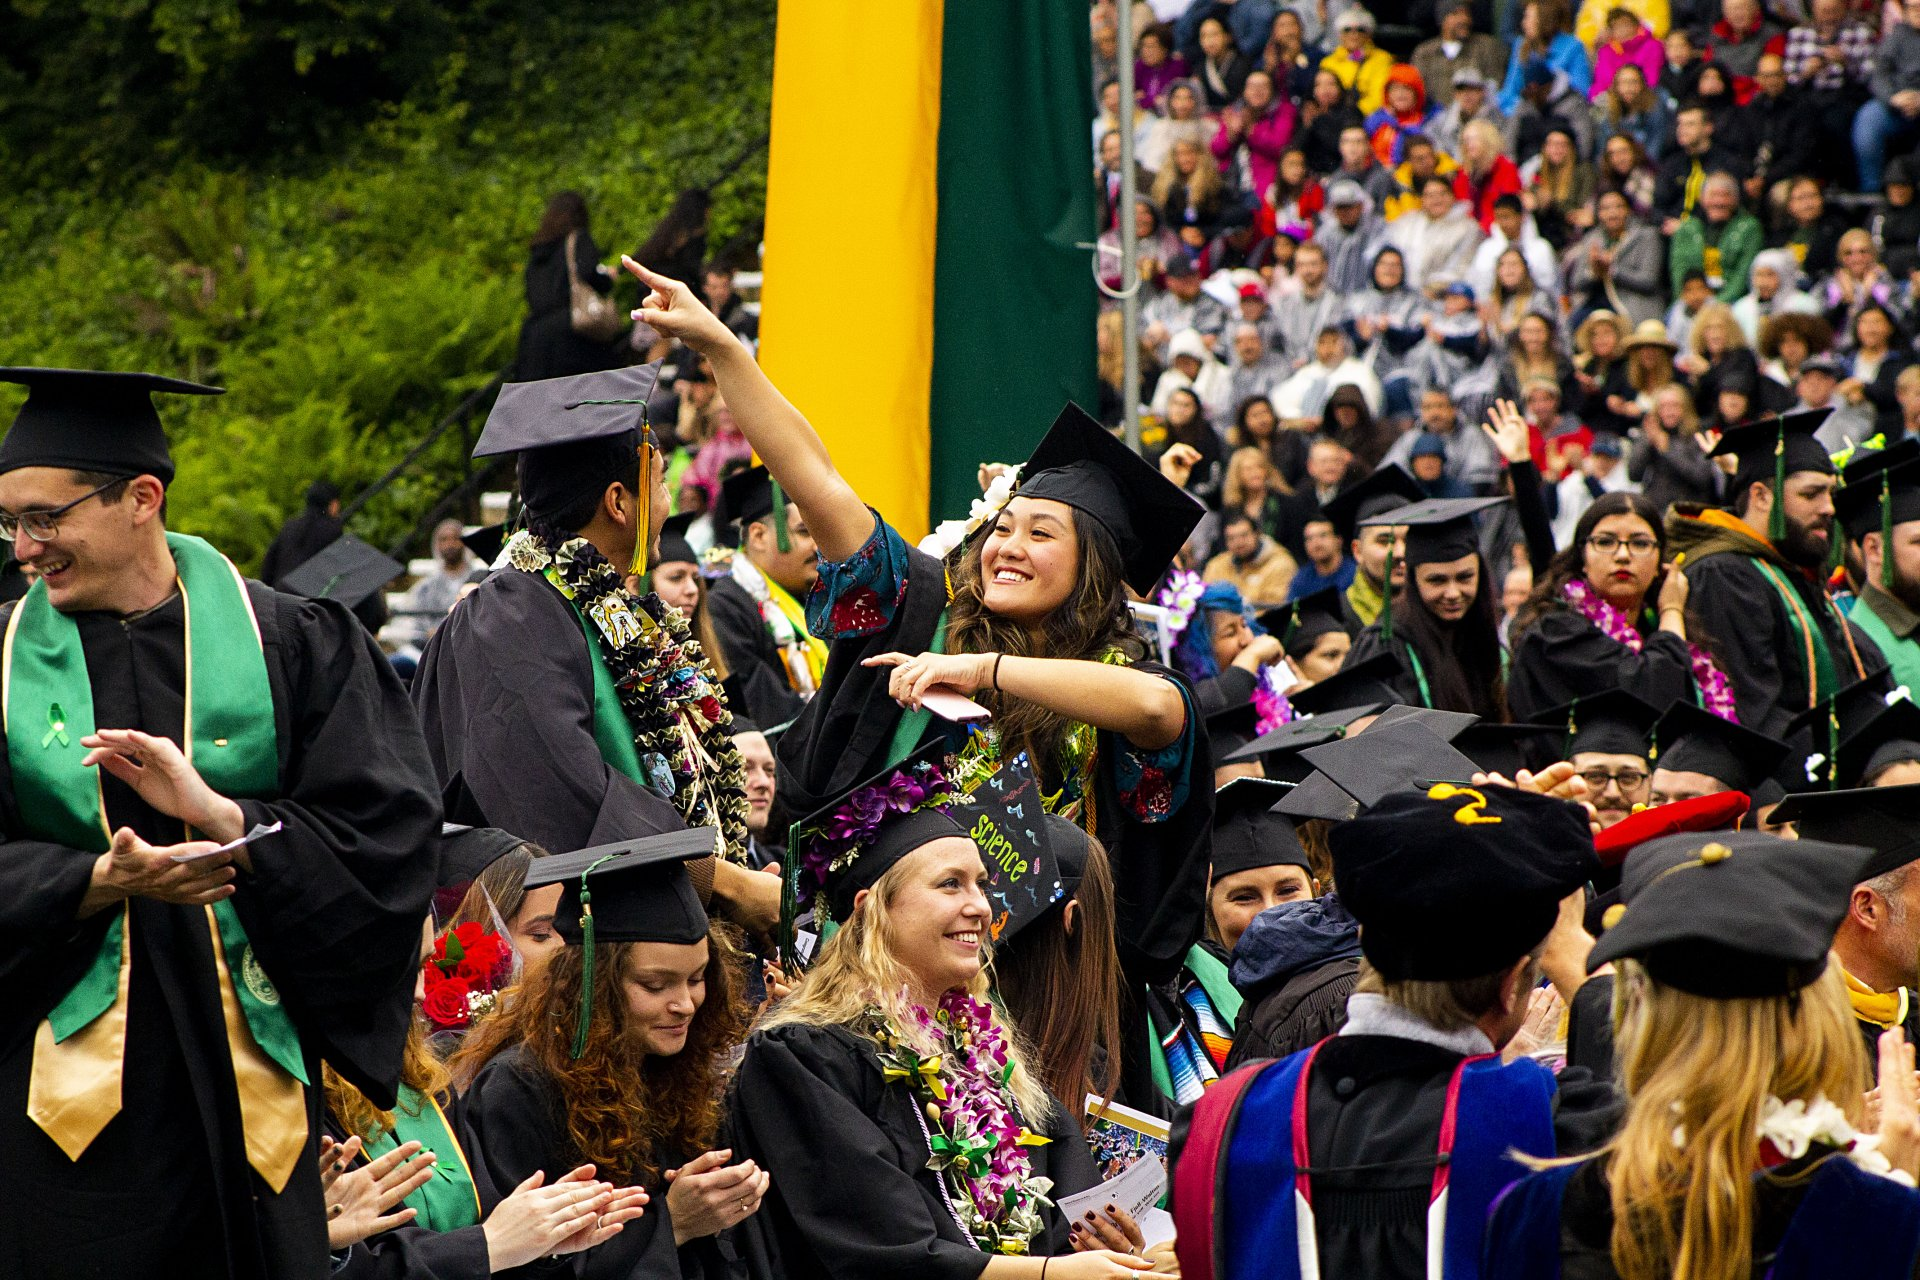 A student points off to someone in the crowd at the 2019 graduation ceremony while graduates from the College of Natural Resources and Sciences settle in on May 18,2019 at the Redwood Bowl. | Photo by Thomas Lal